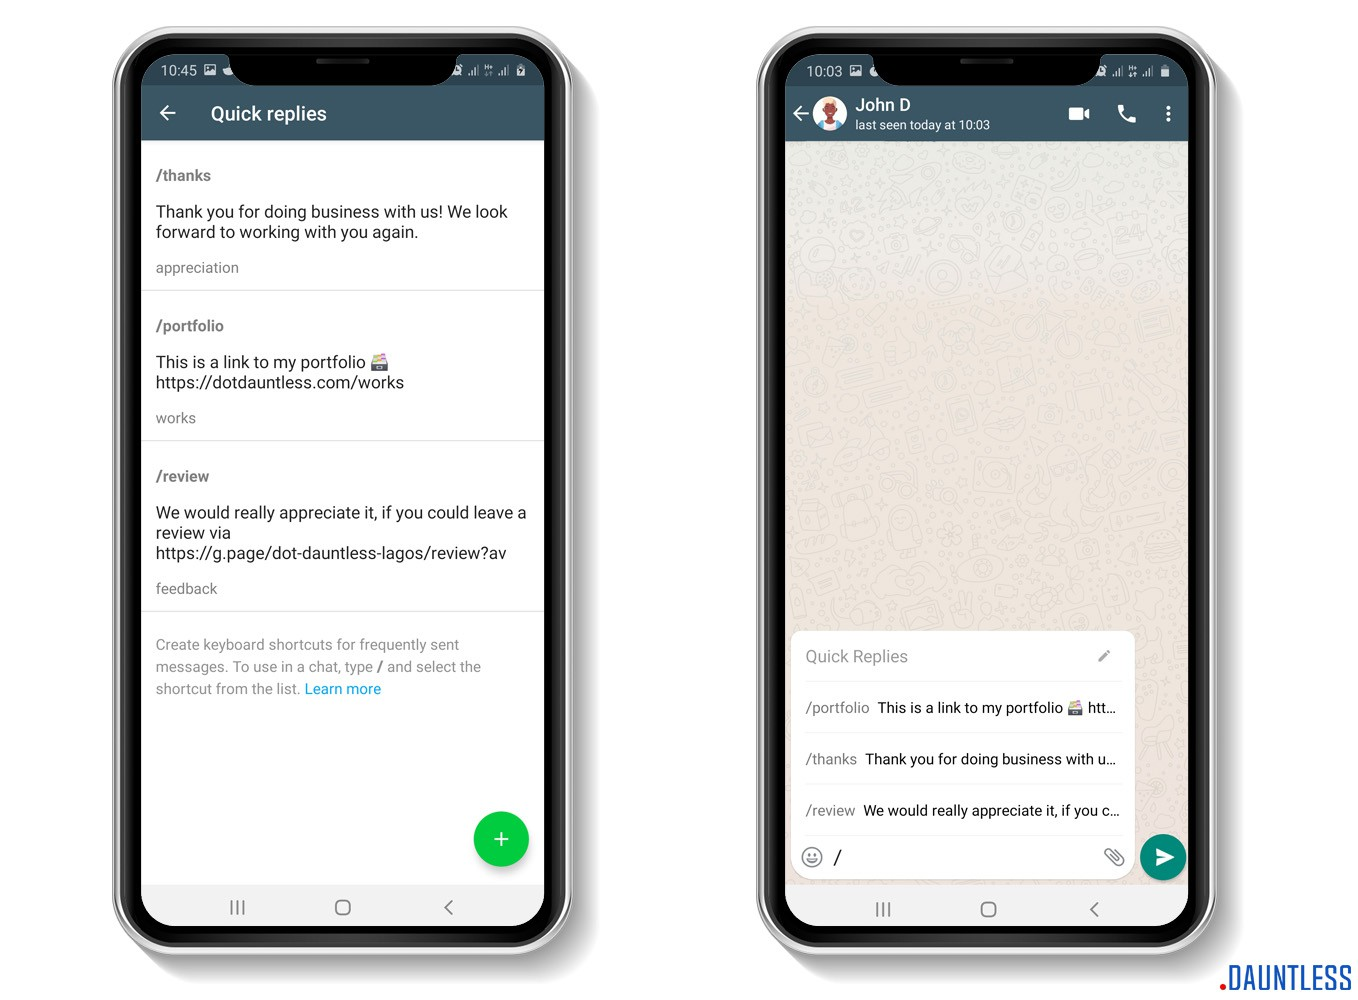 The quick reply feature or tool of the whatsapp business app